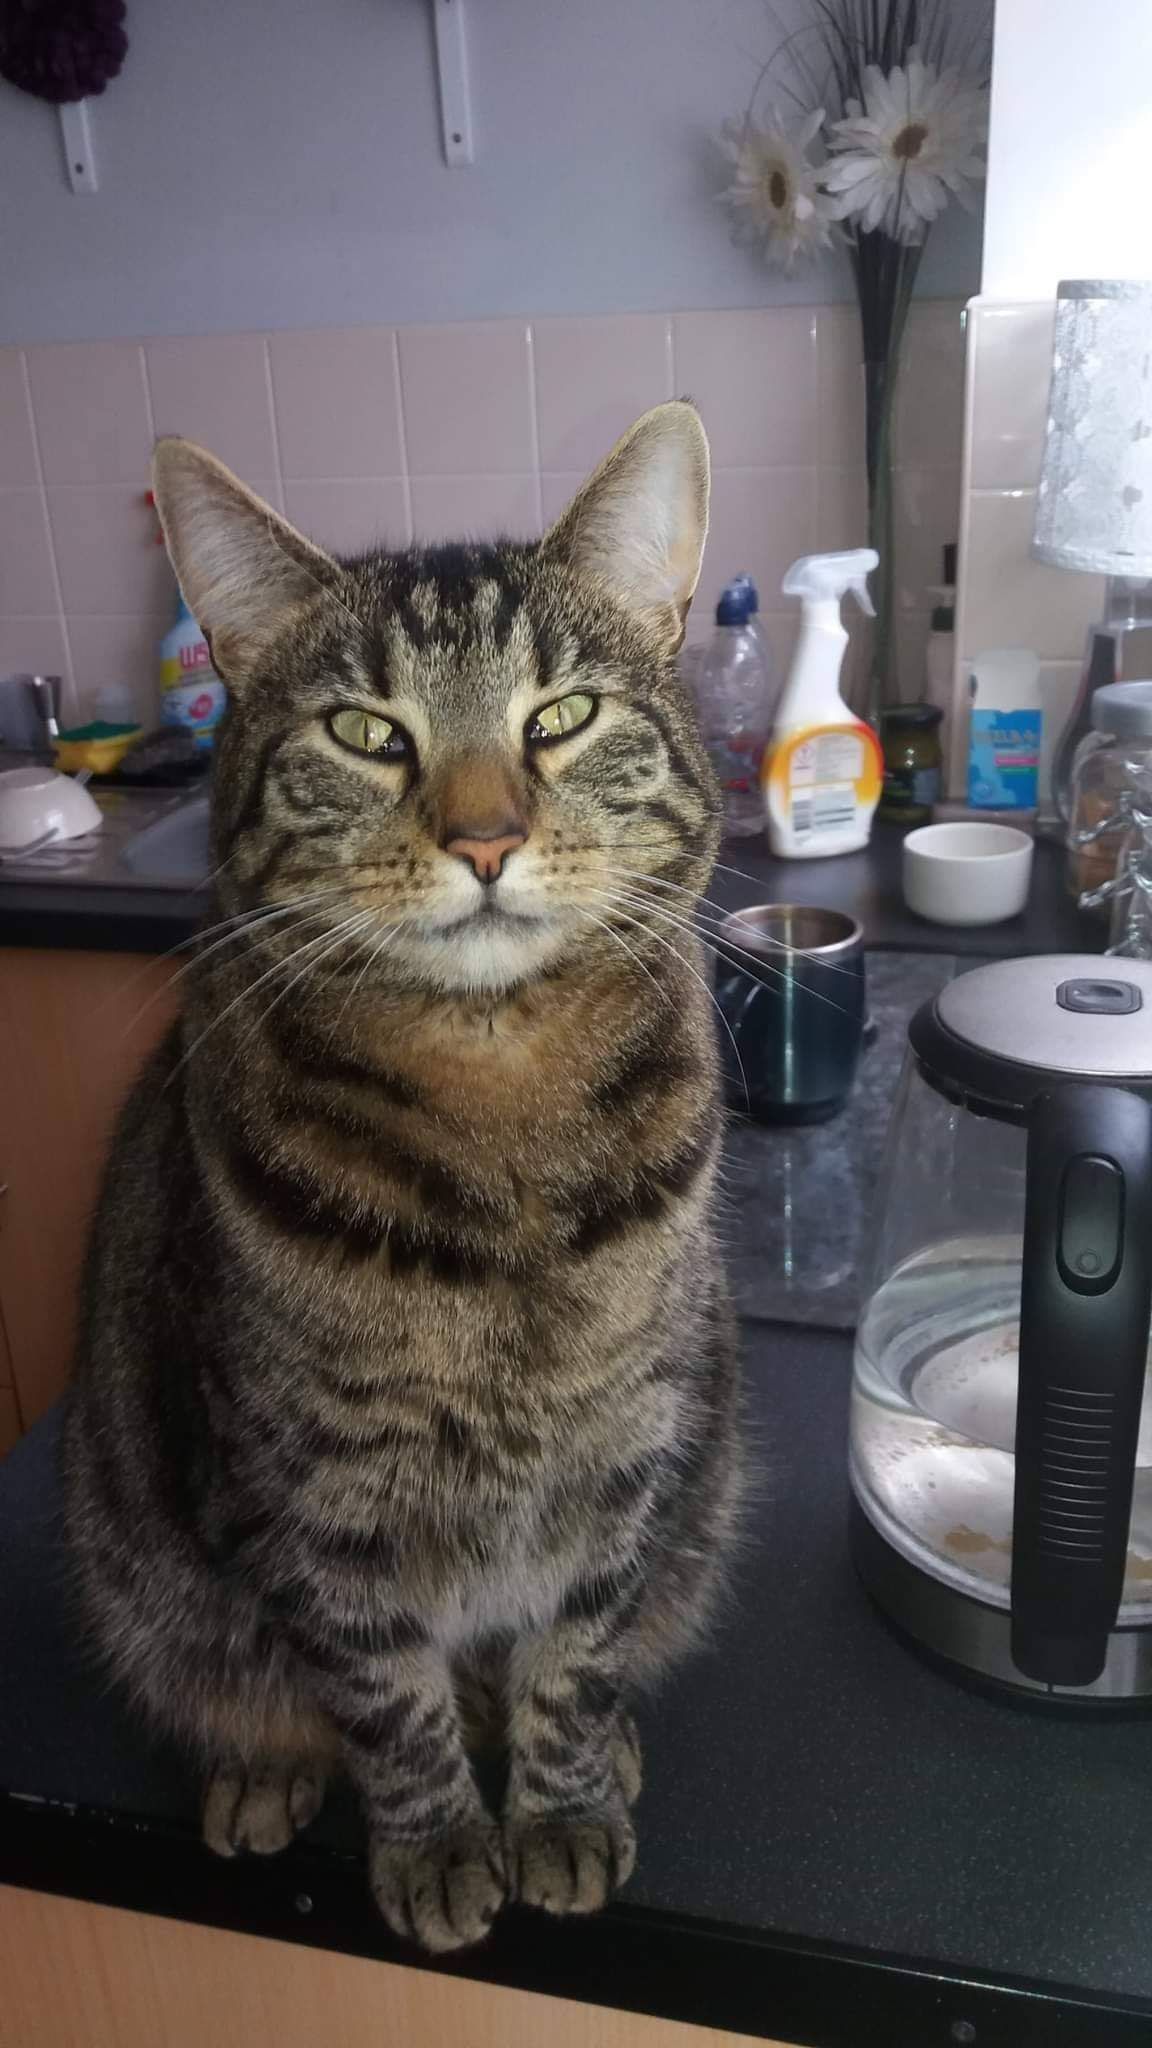 Save Our Scouse Cats on Cats, Cat s, Animal rescue